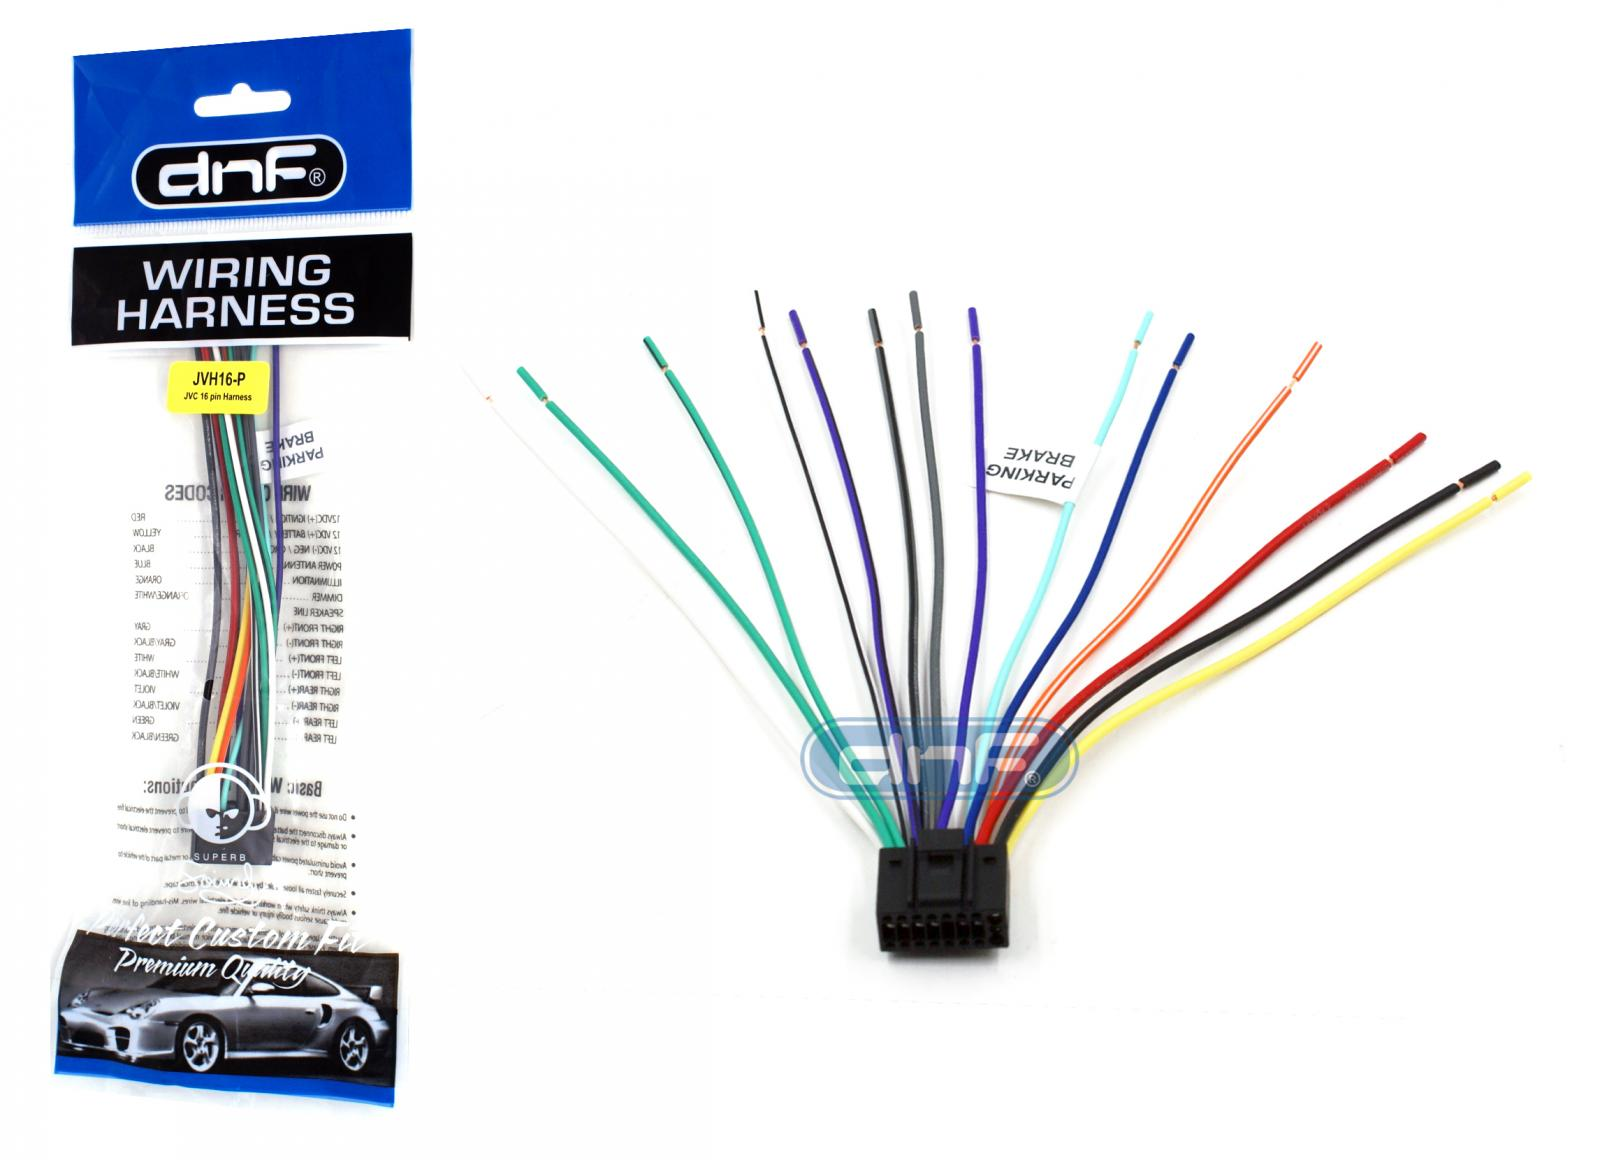 Jvc Kd Sr61 Wiring Harness 26 Diagram Images S79bt Car Stereo Free Download Diagrams Versionidiaaydokeszxvovvl6smekthtnedbmk67 Kw Nx7000 Kwnx7000 Avx710 Kwavx710